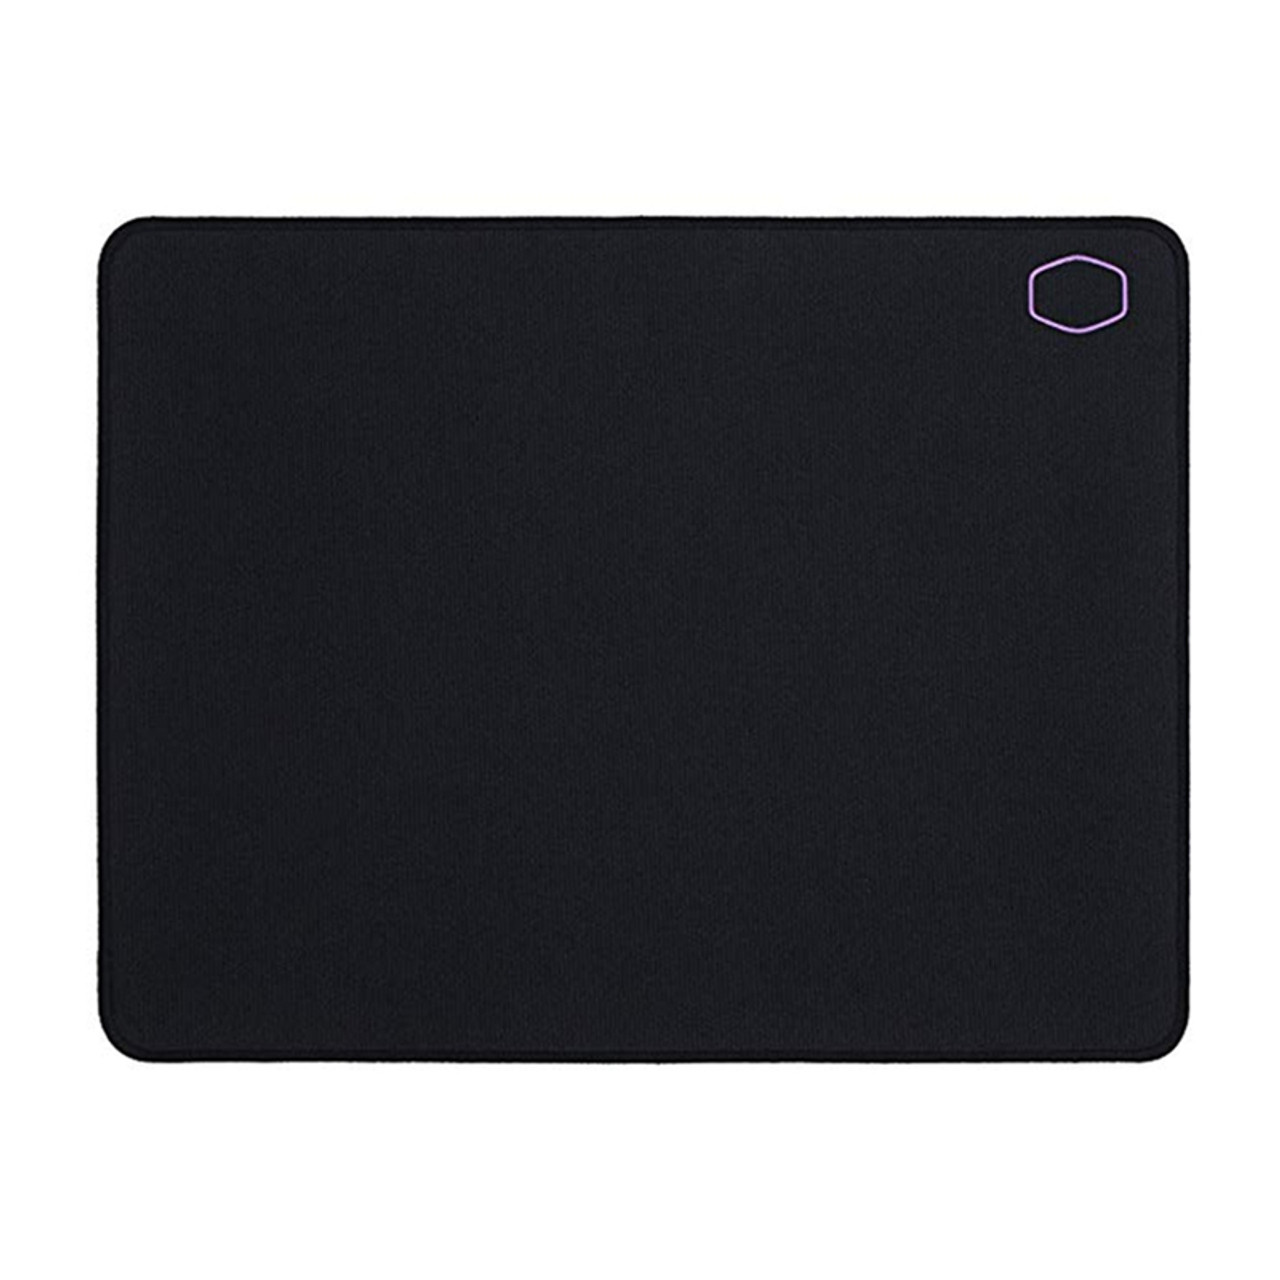 Image for Cooler Master MP510 Gaming Mouse Pad - Large CX Computer Superstore